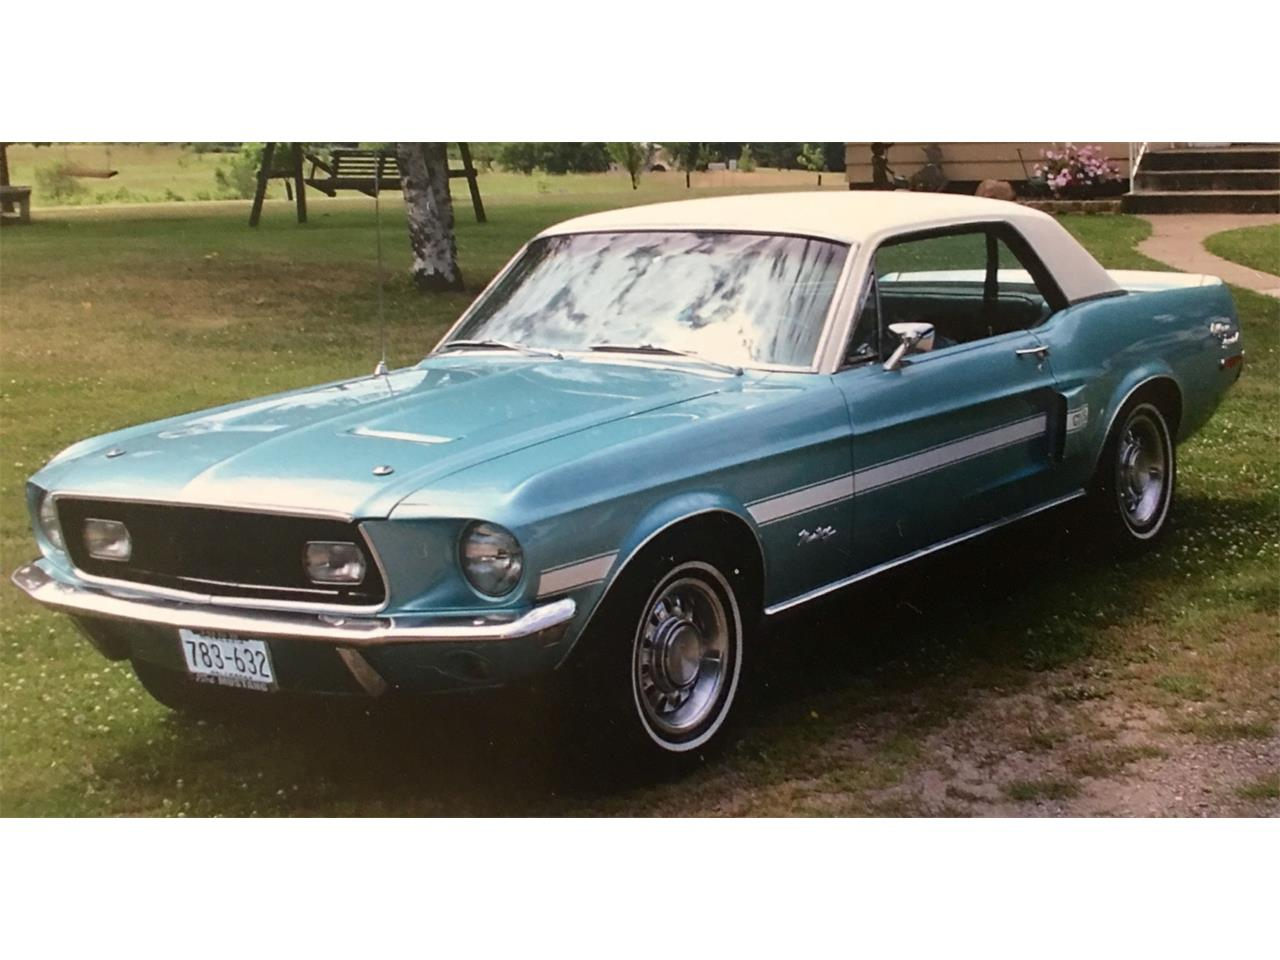 Large picture of 68 mustang gt cs california special 30500 00